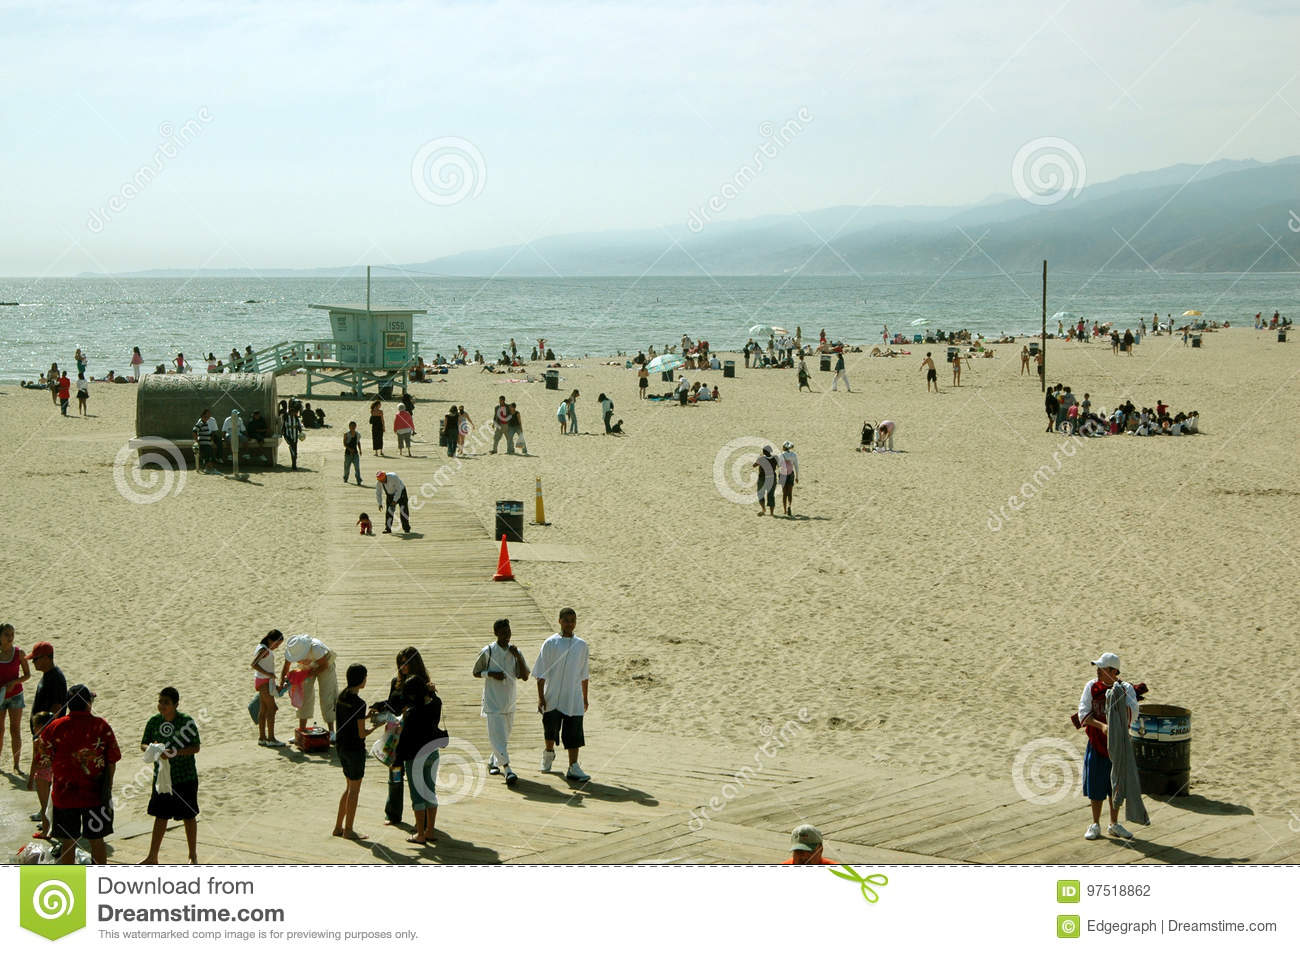 Ocio en la playa, Santa Monica Beach, California, los E.E.U.U.